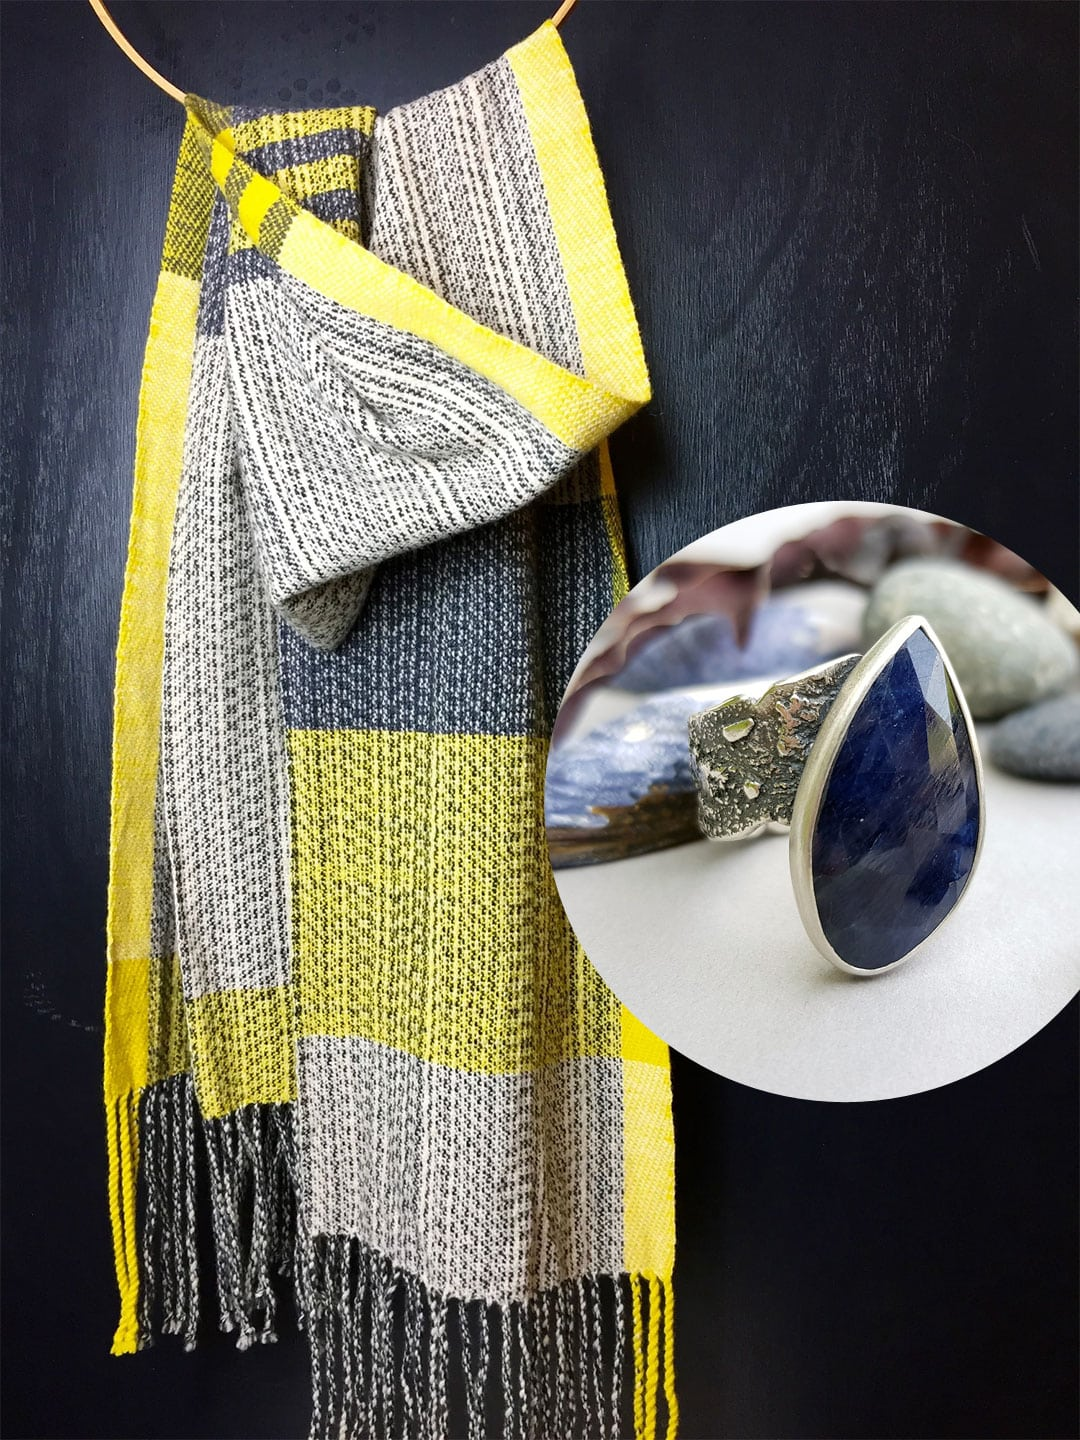 Teresa Dunne handwoven lambswool scarf and my blue sapphire Rugged ring